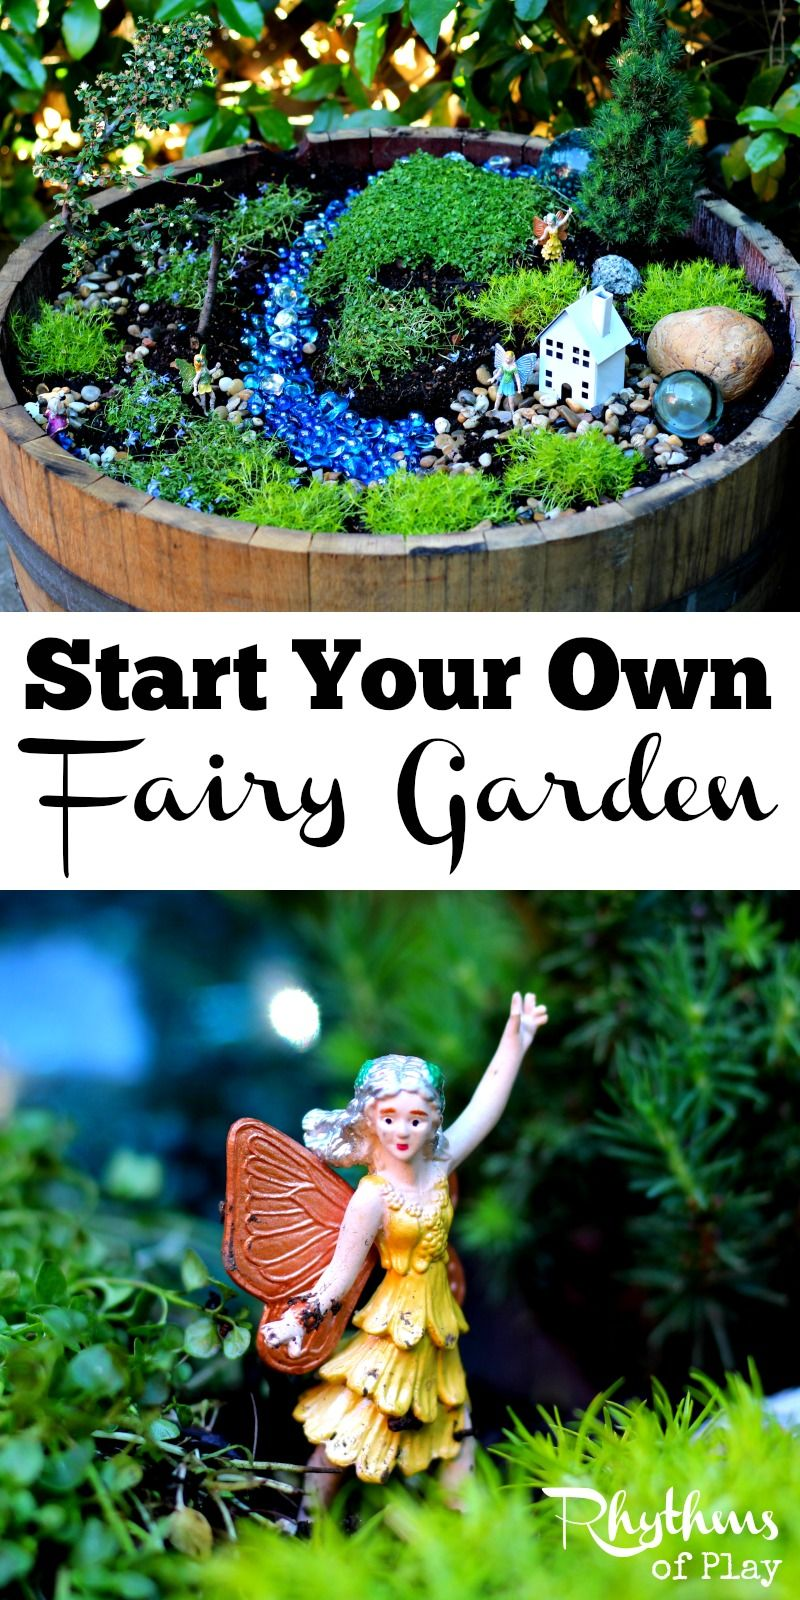 Start Your Own Fairy Garden Gardens Decks and Backyards